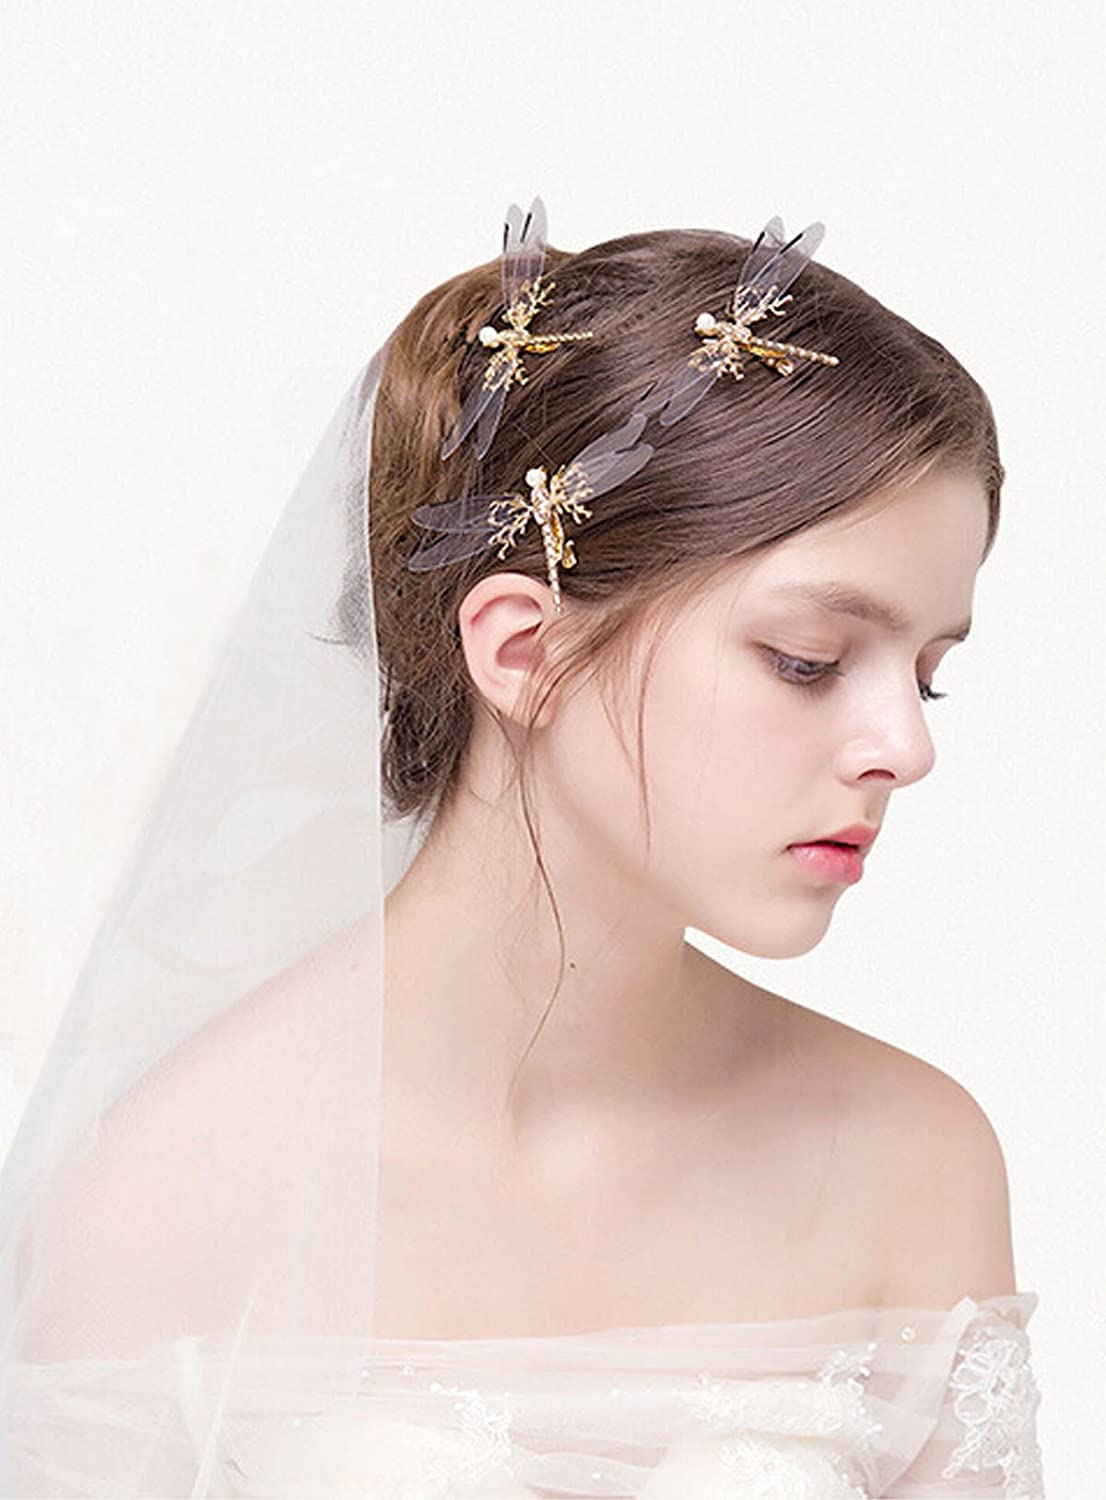 Bridalvenus Hair Clips Dragonfly Hair Pins Fashion Claw - Wedding Headpieces for Women and Girls on Party, Casual (Three Pieces in One Package)